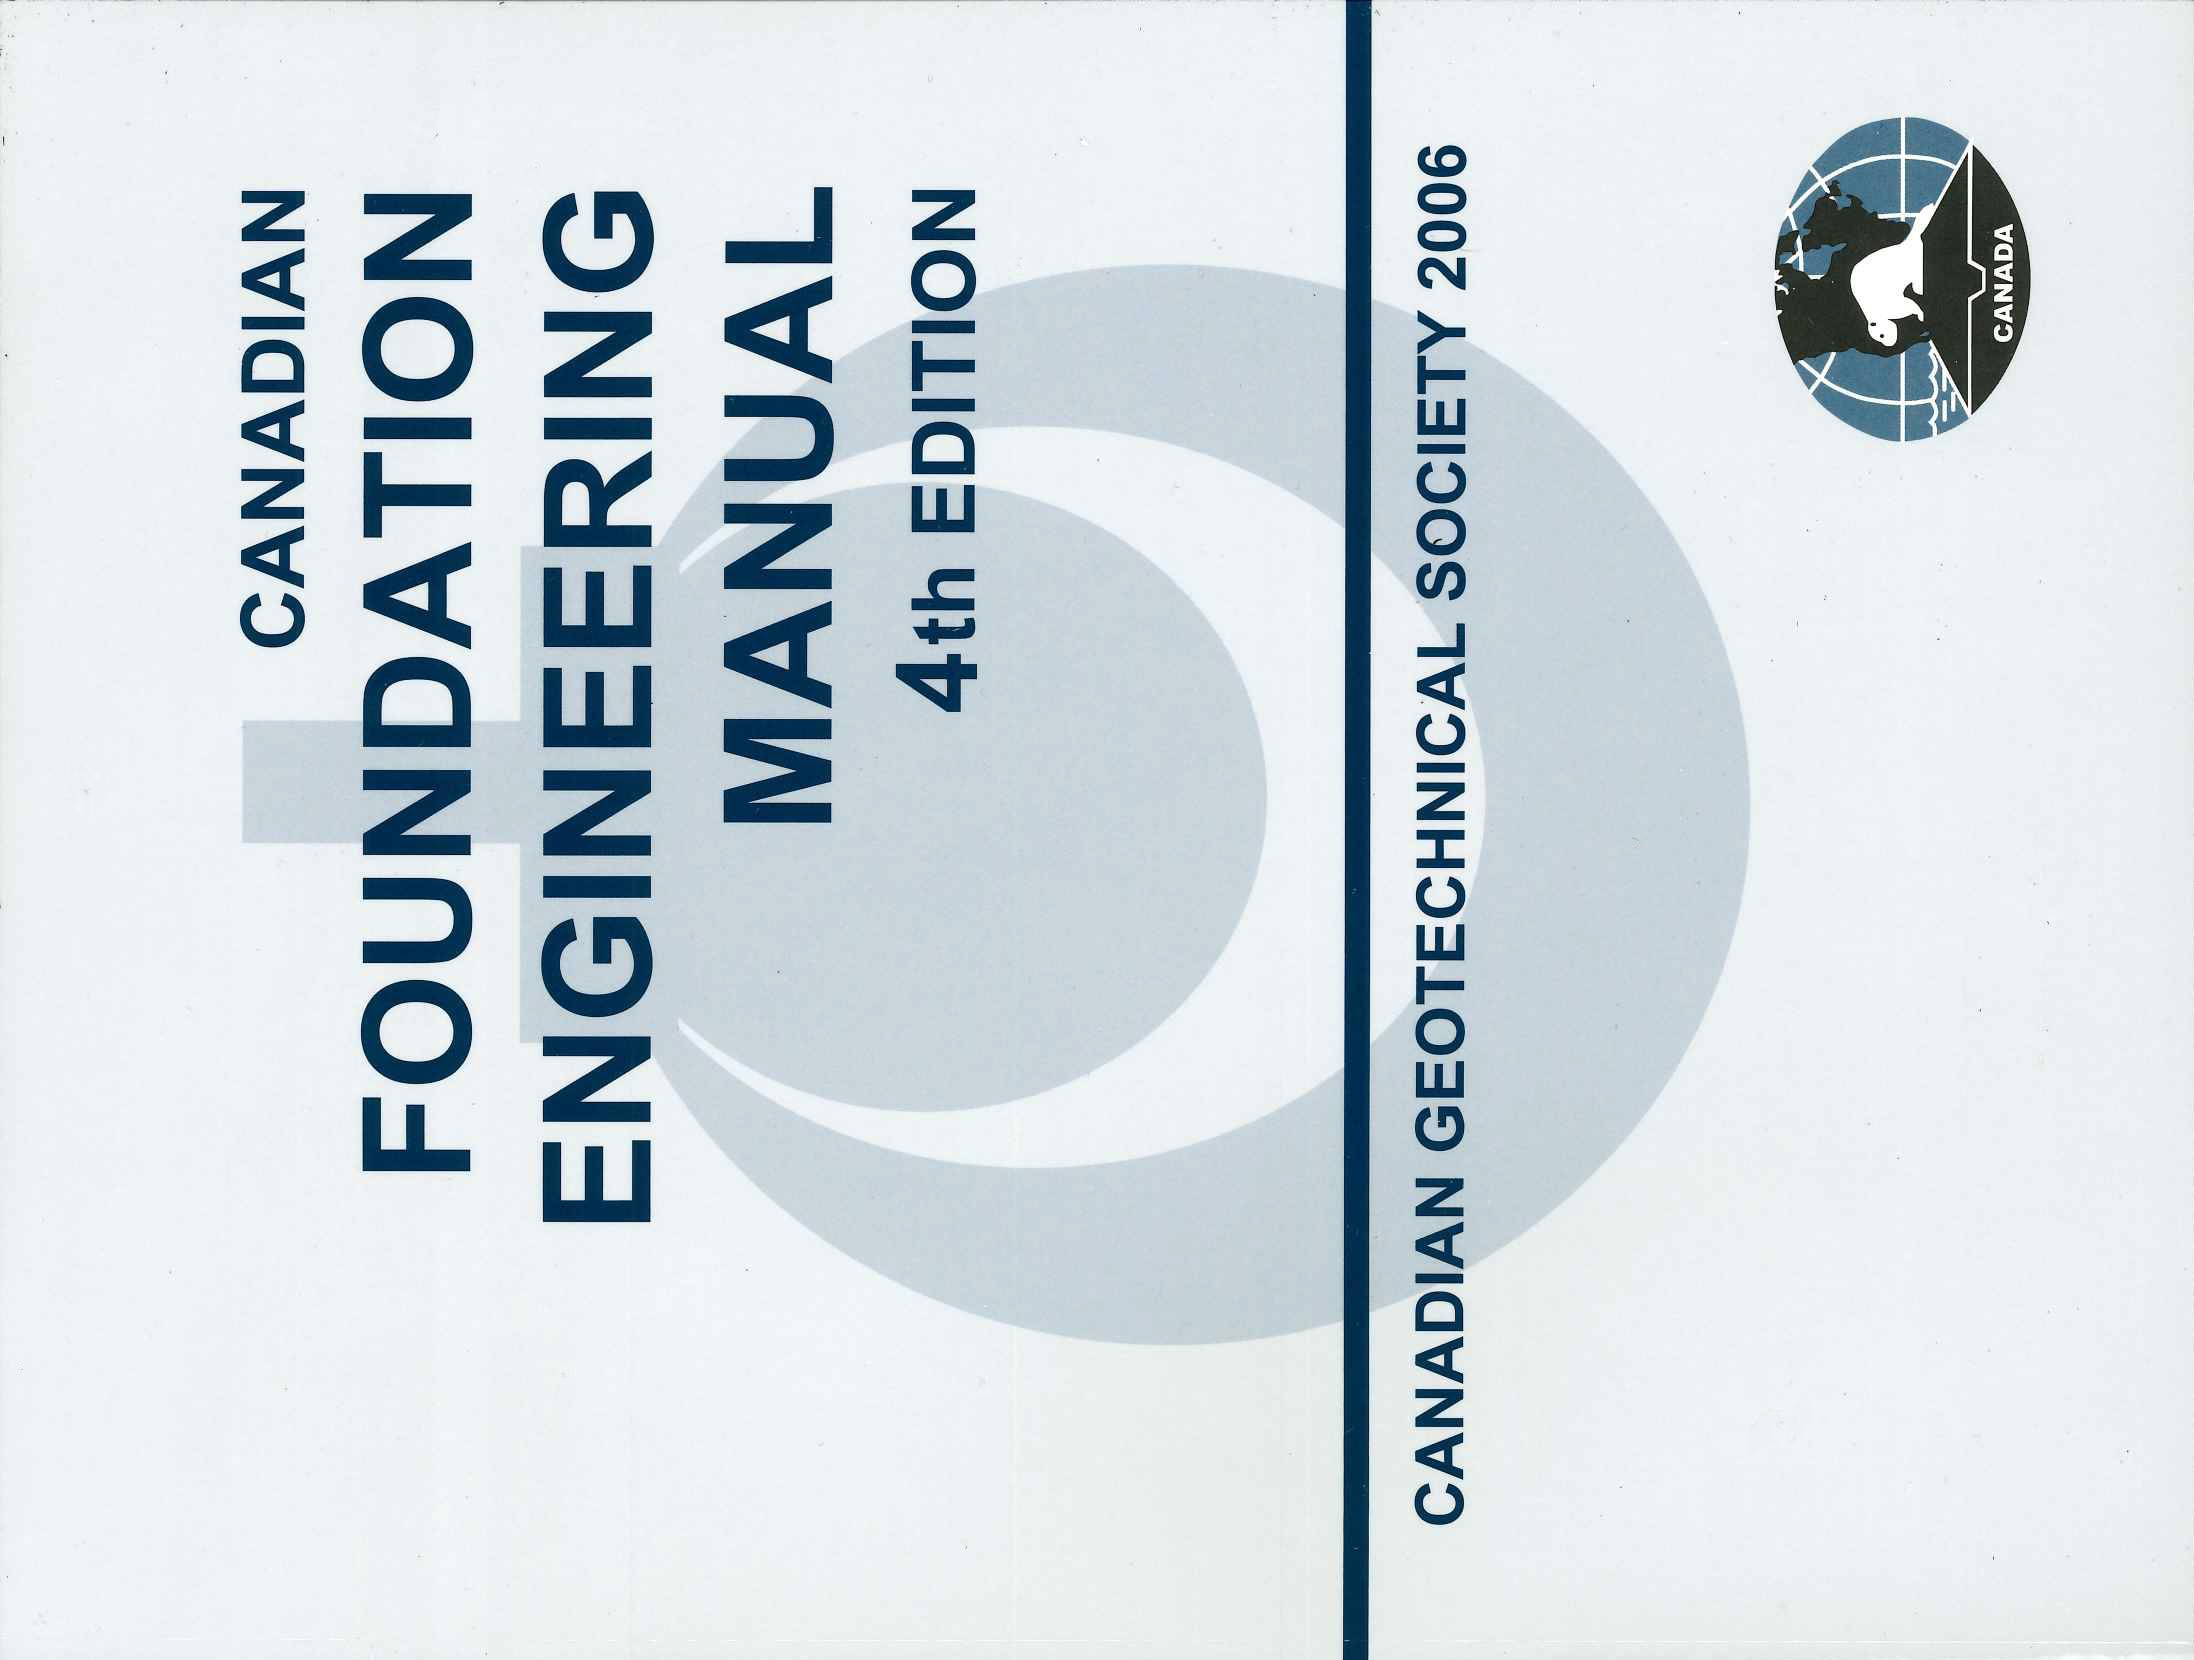 Canadian Foundation Engineering Manual - 4th Edition 2006